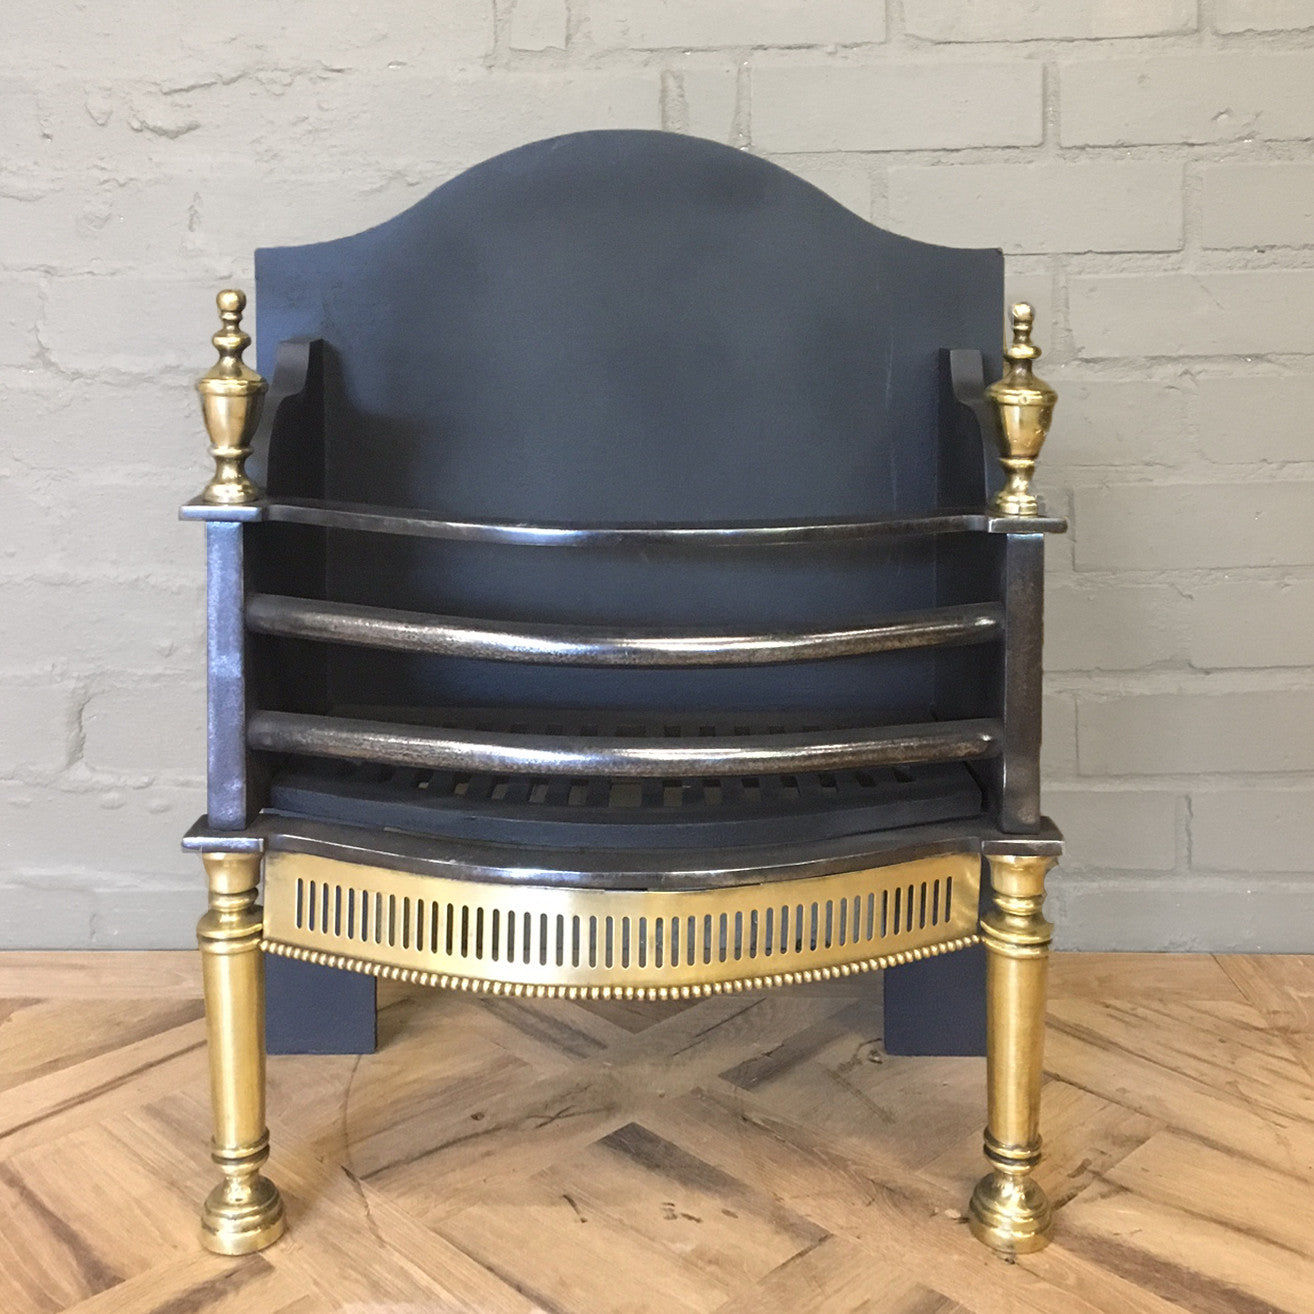 Reclaimed Cast Iron and Brass Fire Basket